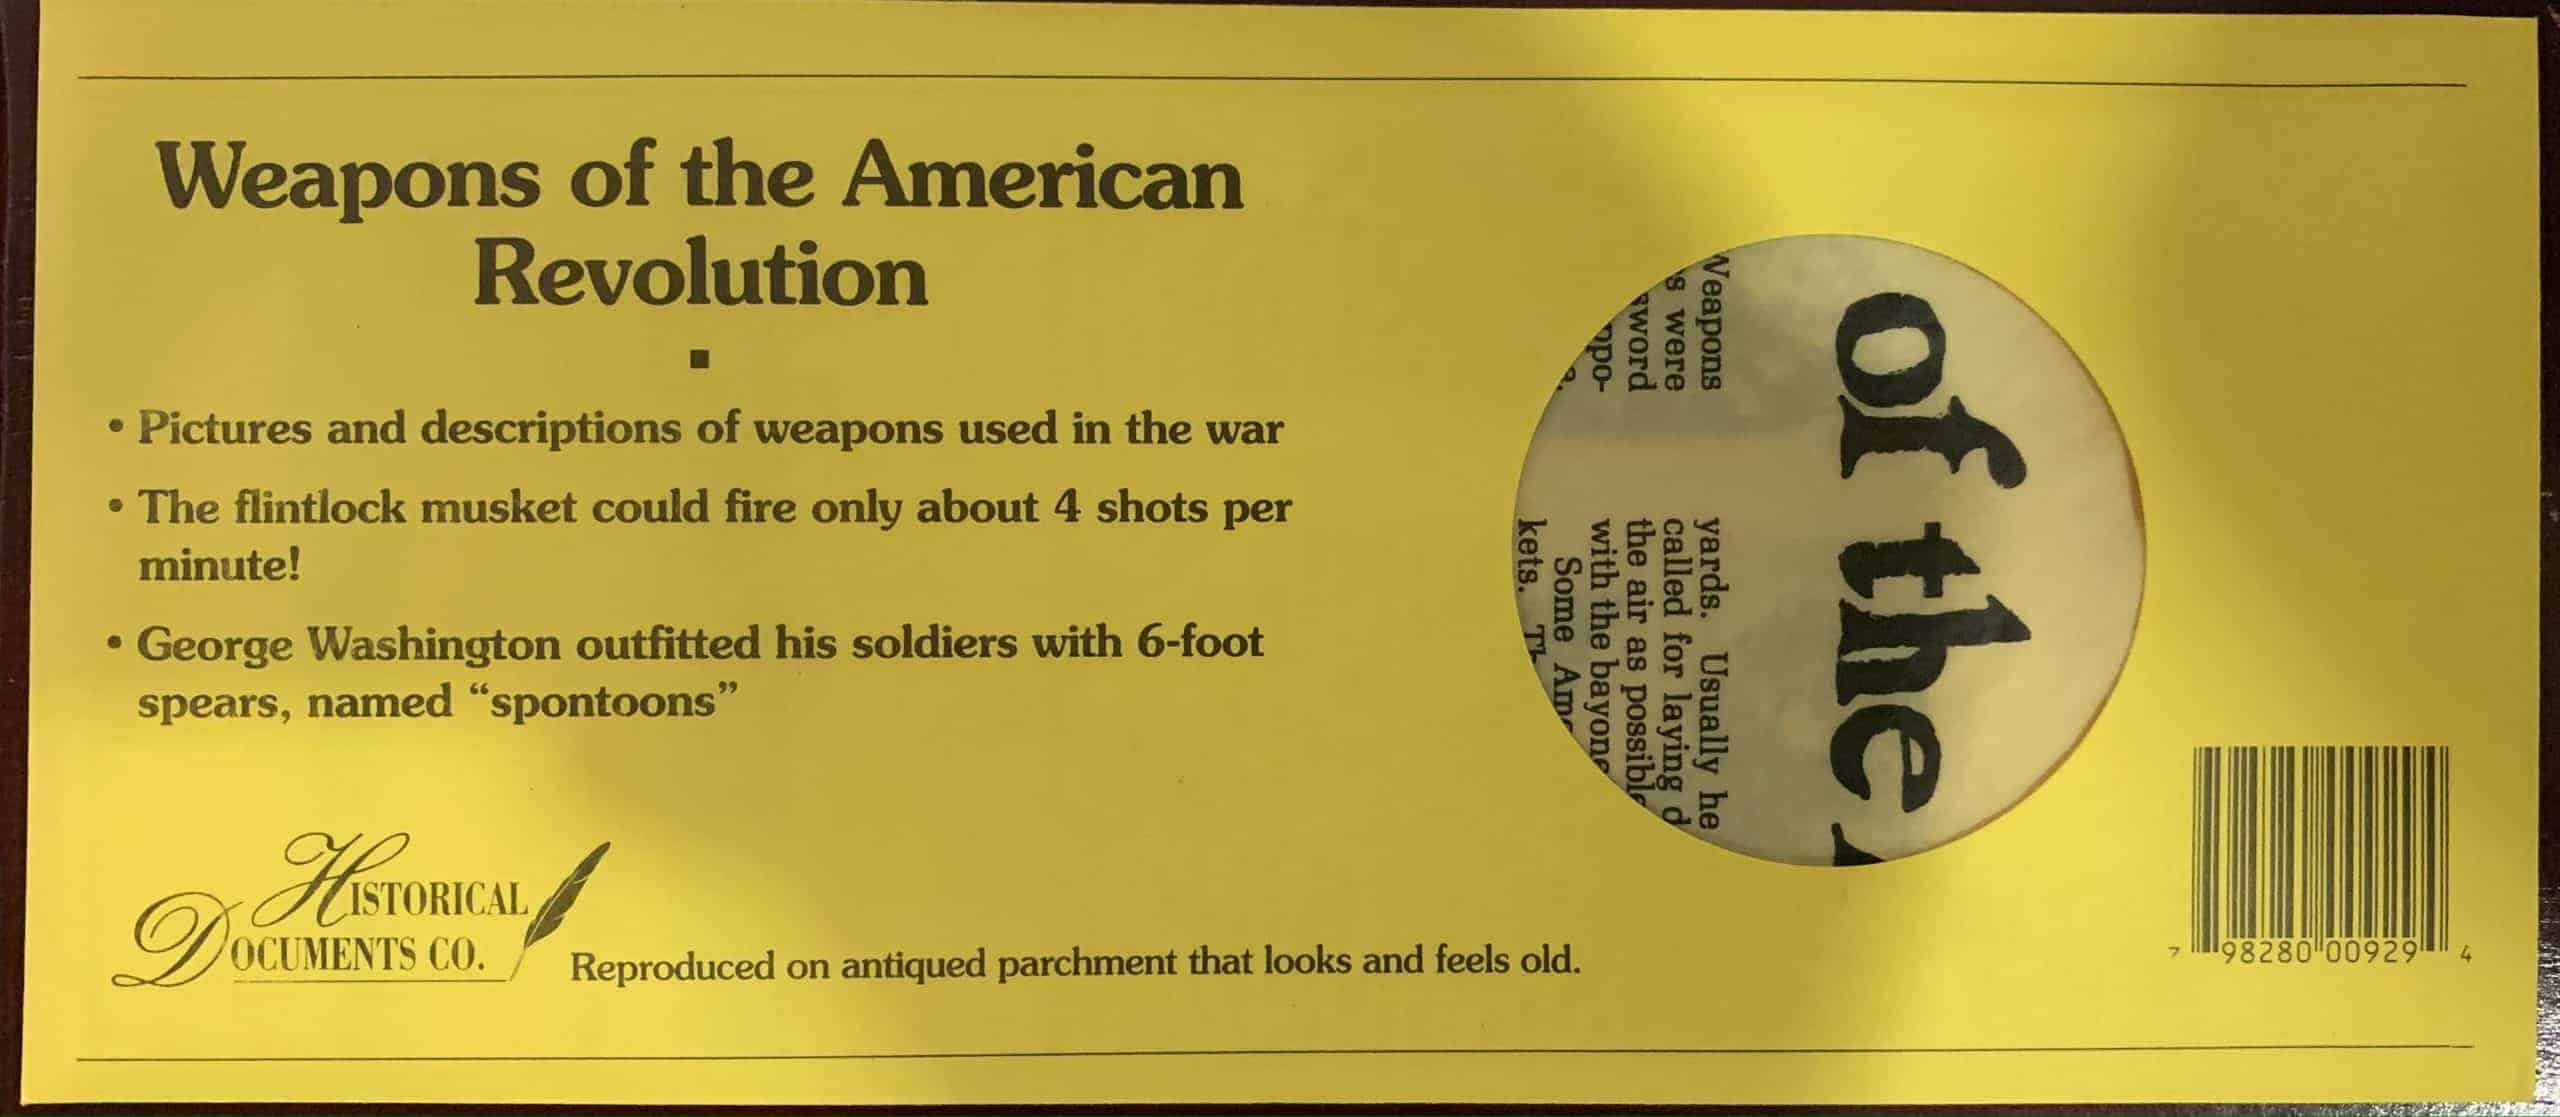 Weapons of the American Revolution- Parchment